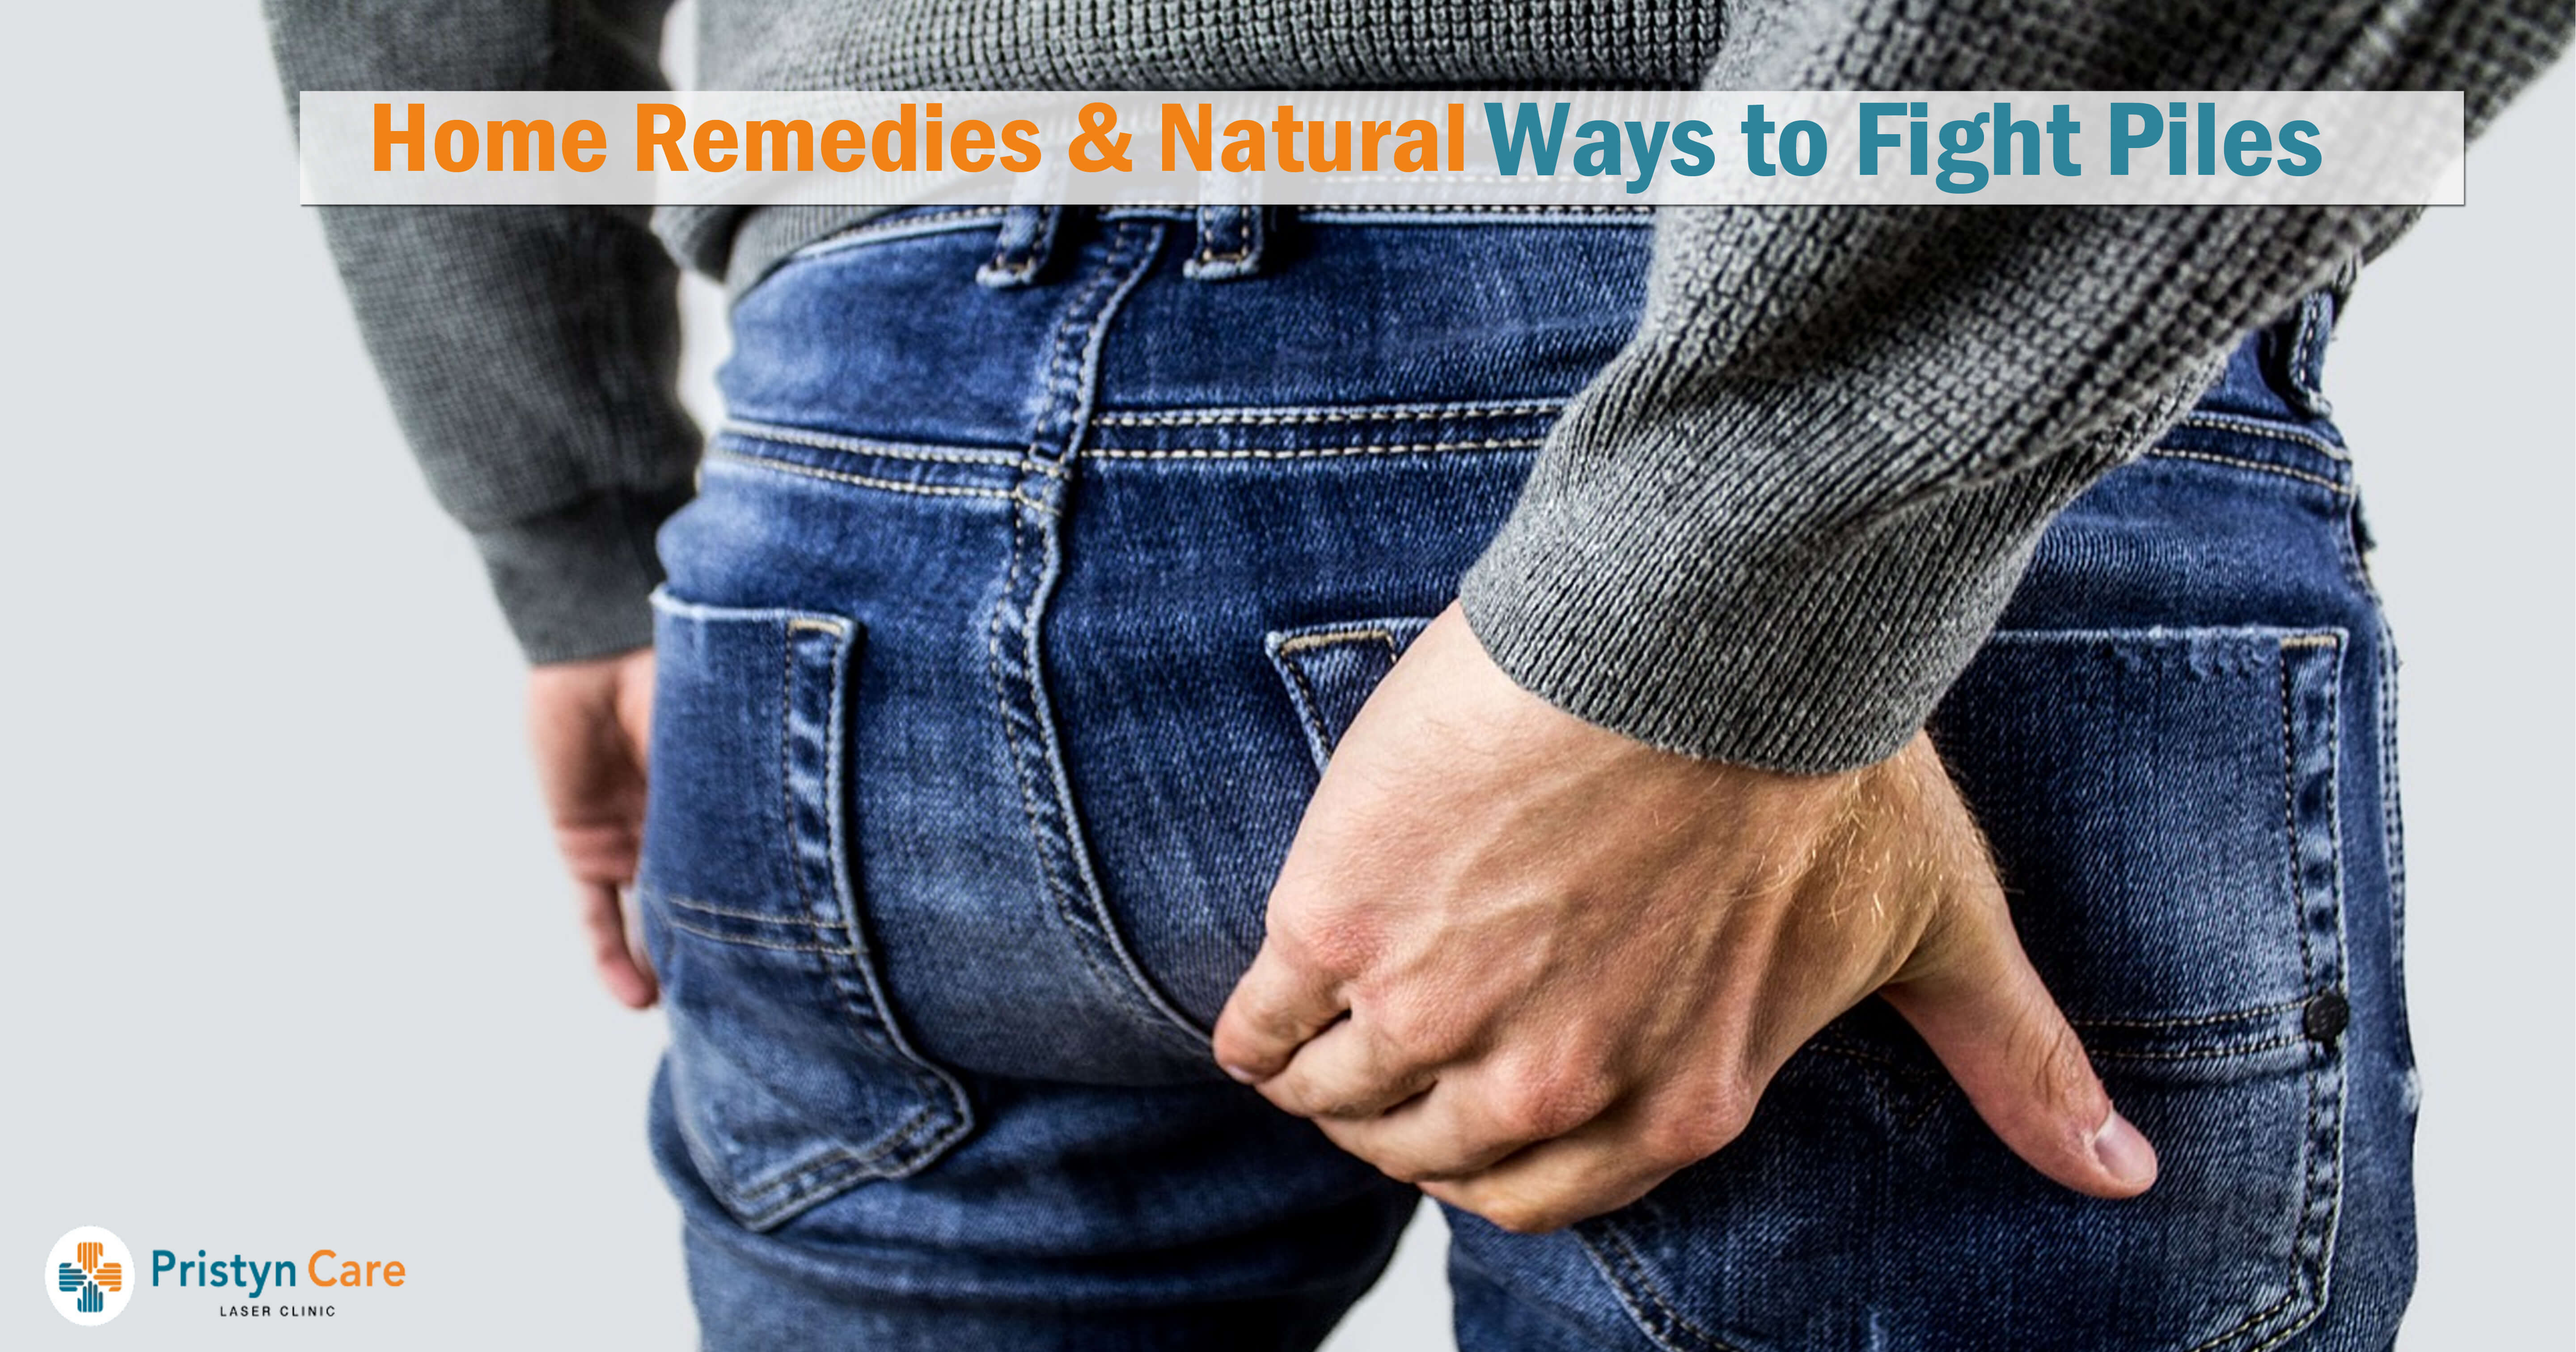 Home Remedies & Natural Ways to Fight Piles